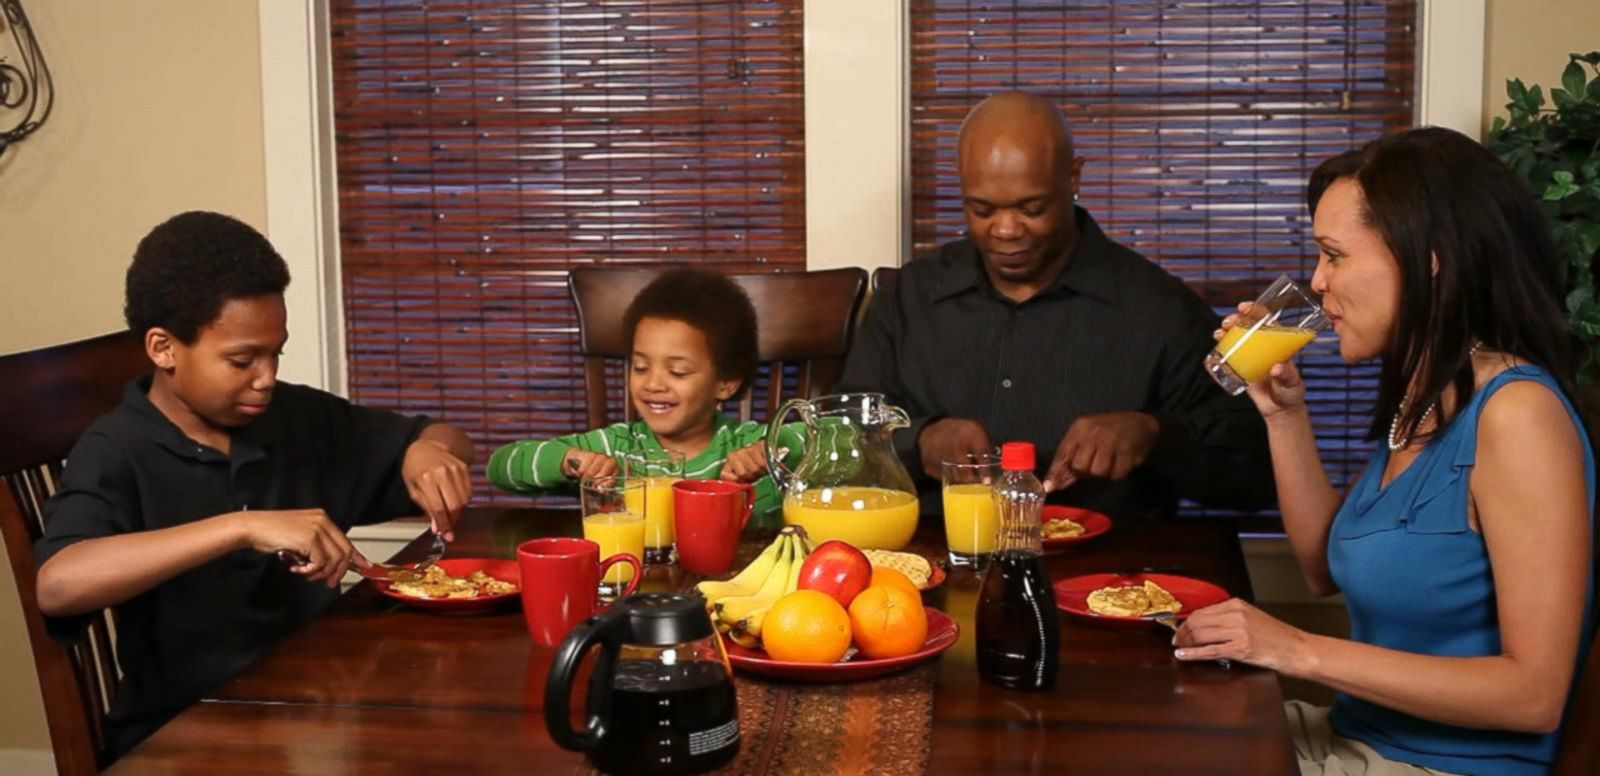 VIDEO: Does Breakfast Really Matter?